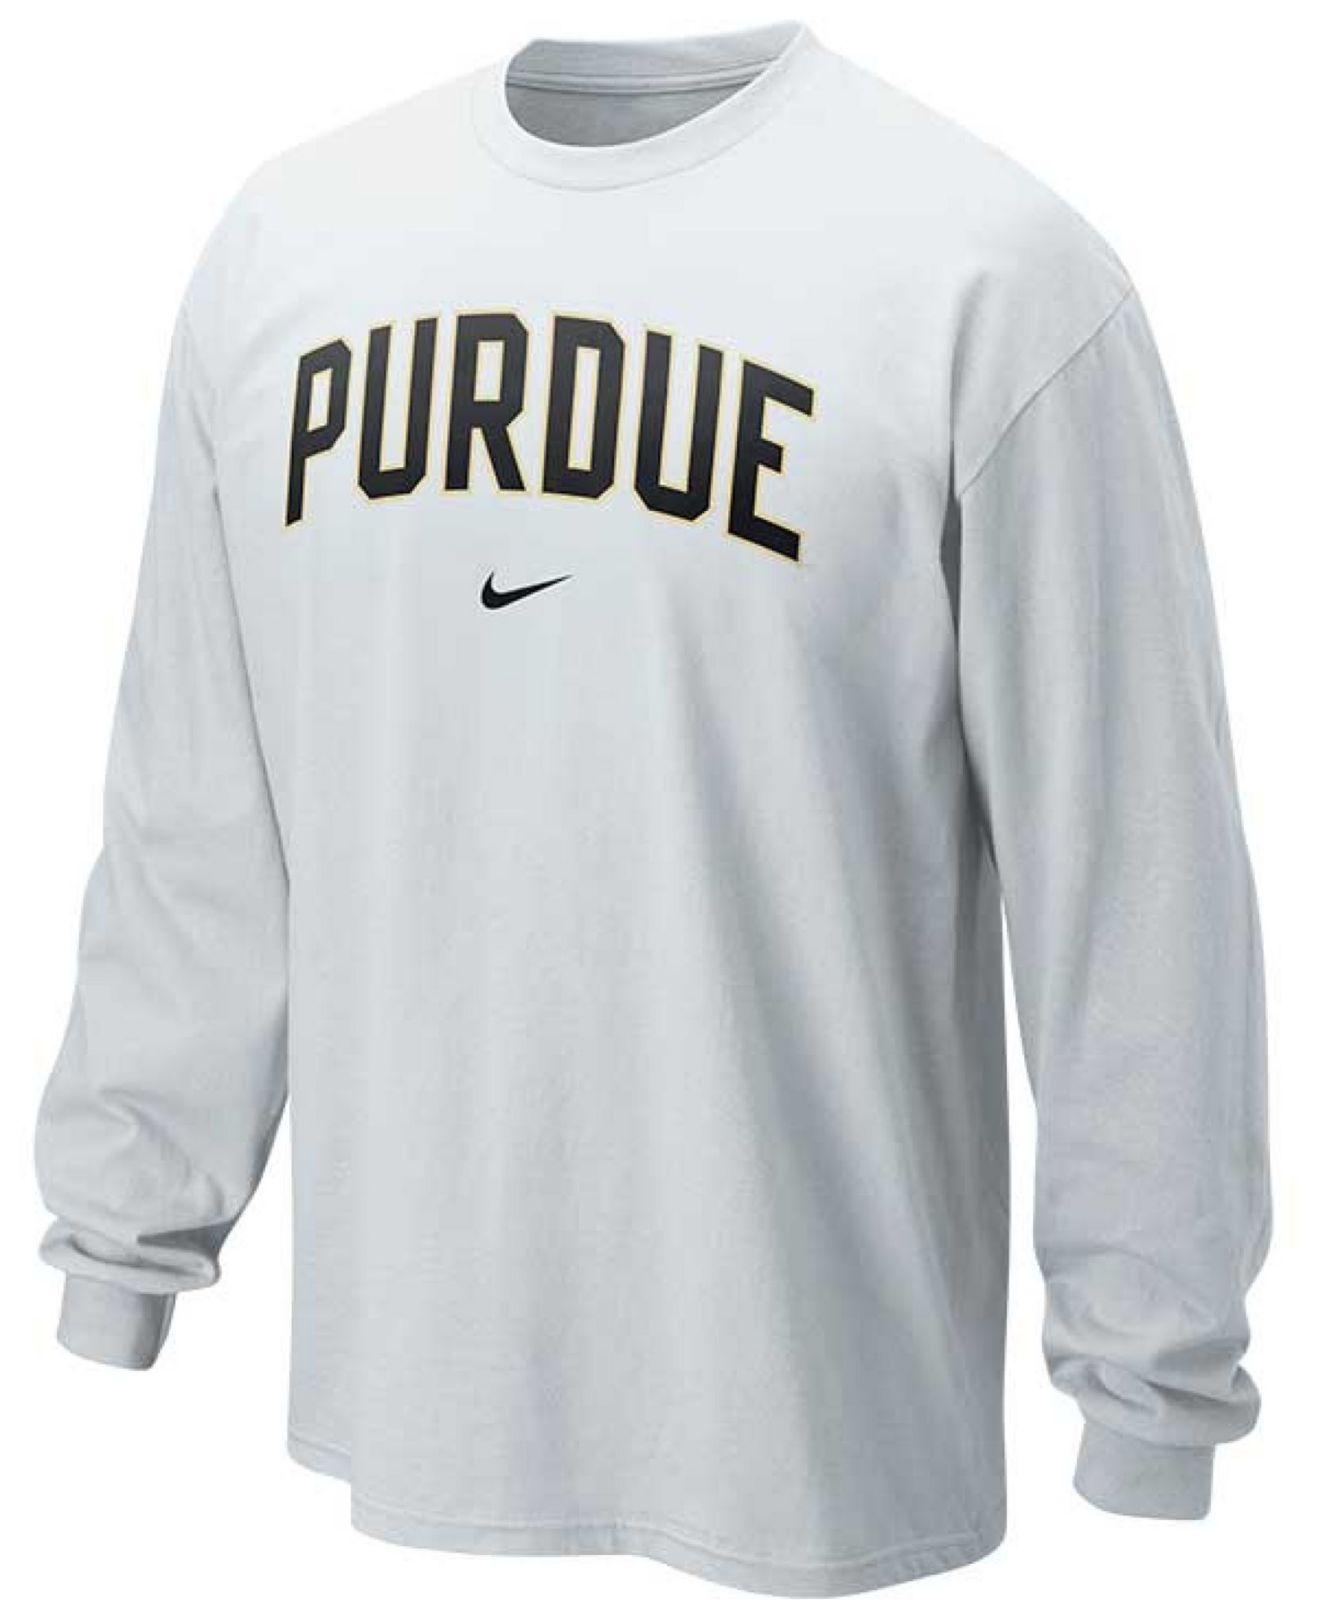 a1f4e299a lyst nike mens long sleeve purdue boilermakers t shirt in white .